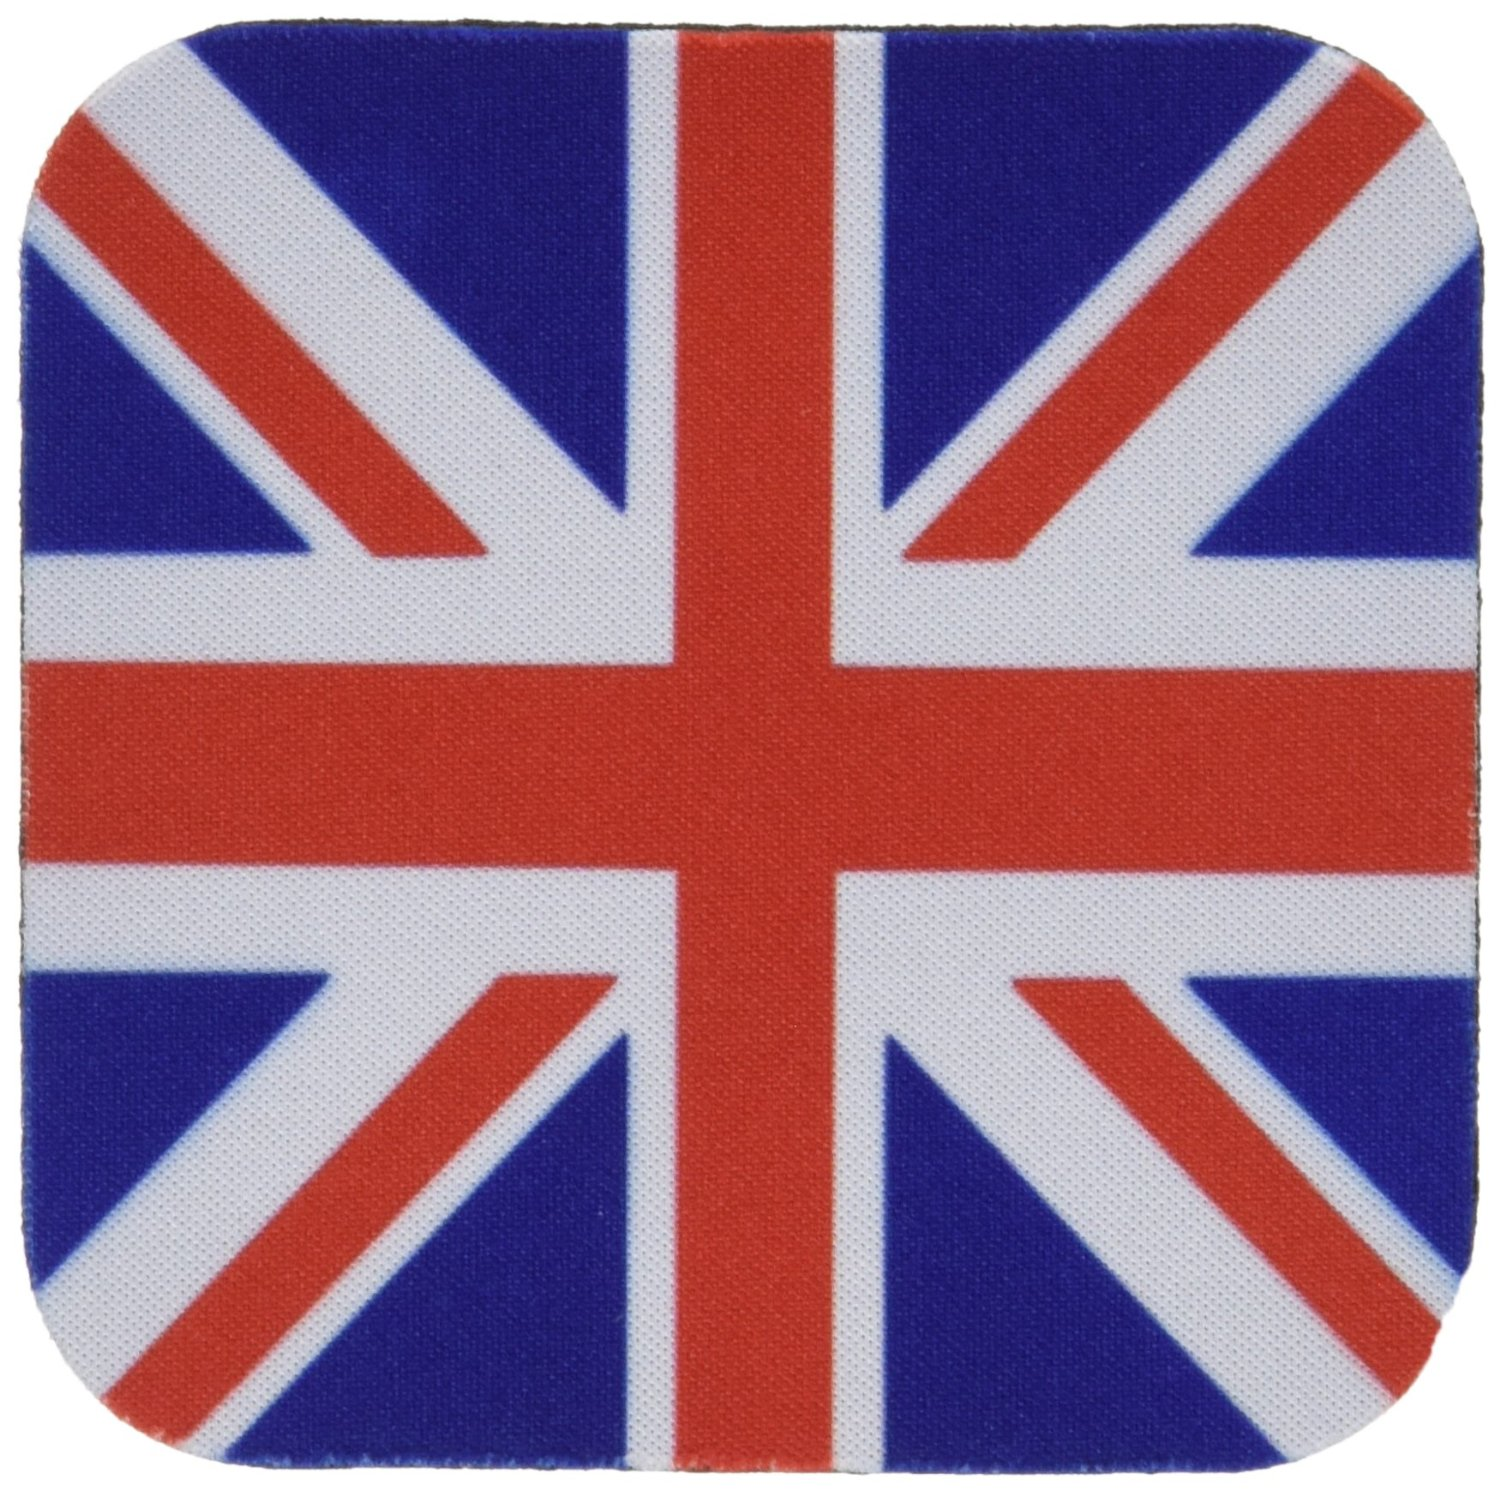 3dRose cst_159852_1 British Flag Red White Blue Union Jack Great Britain United Kingdom UK England English Souvenir Gb Soft Coasters, Set of 4